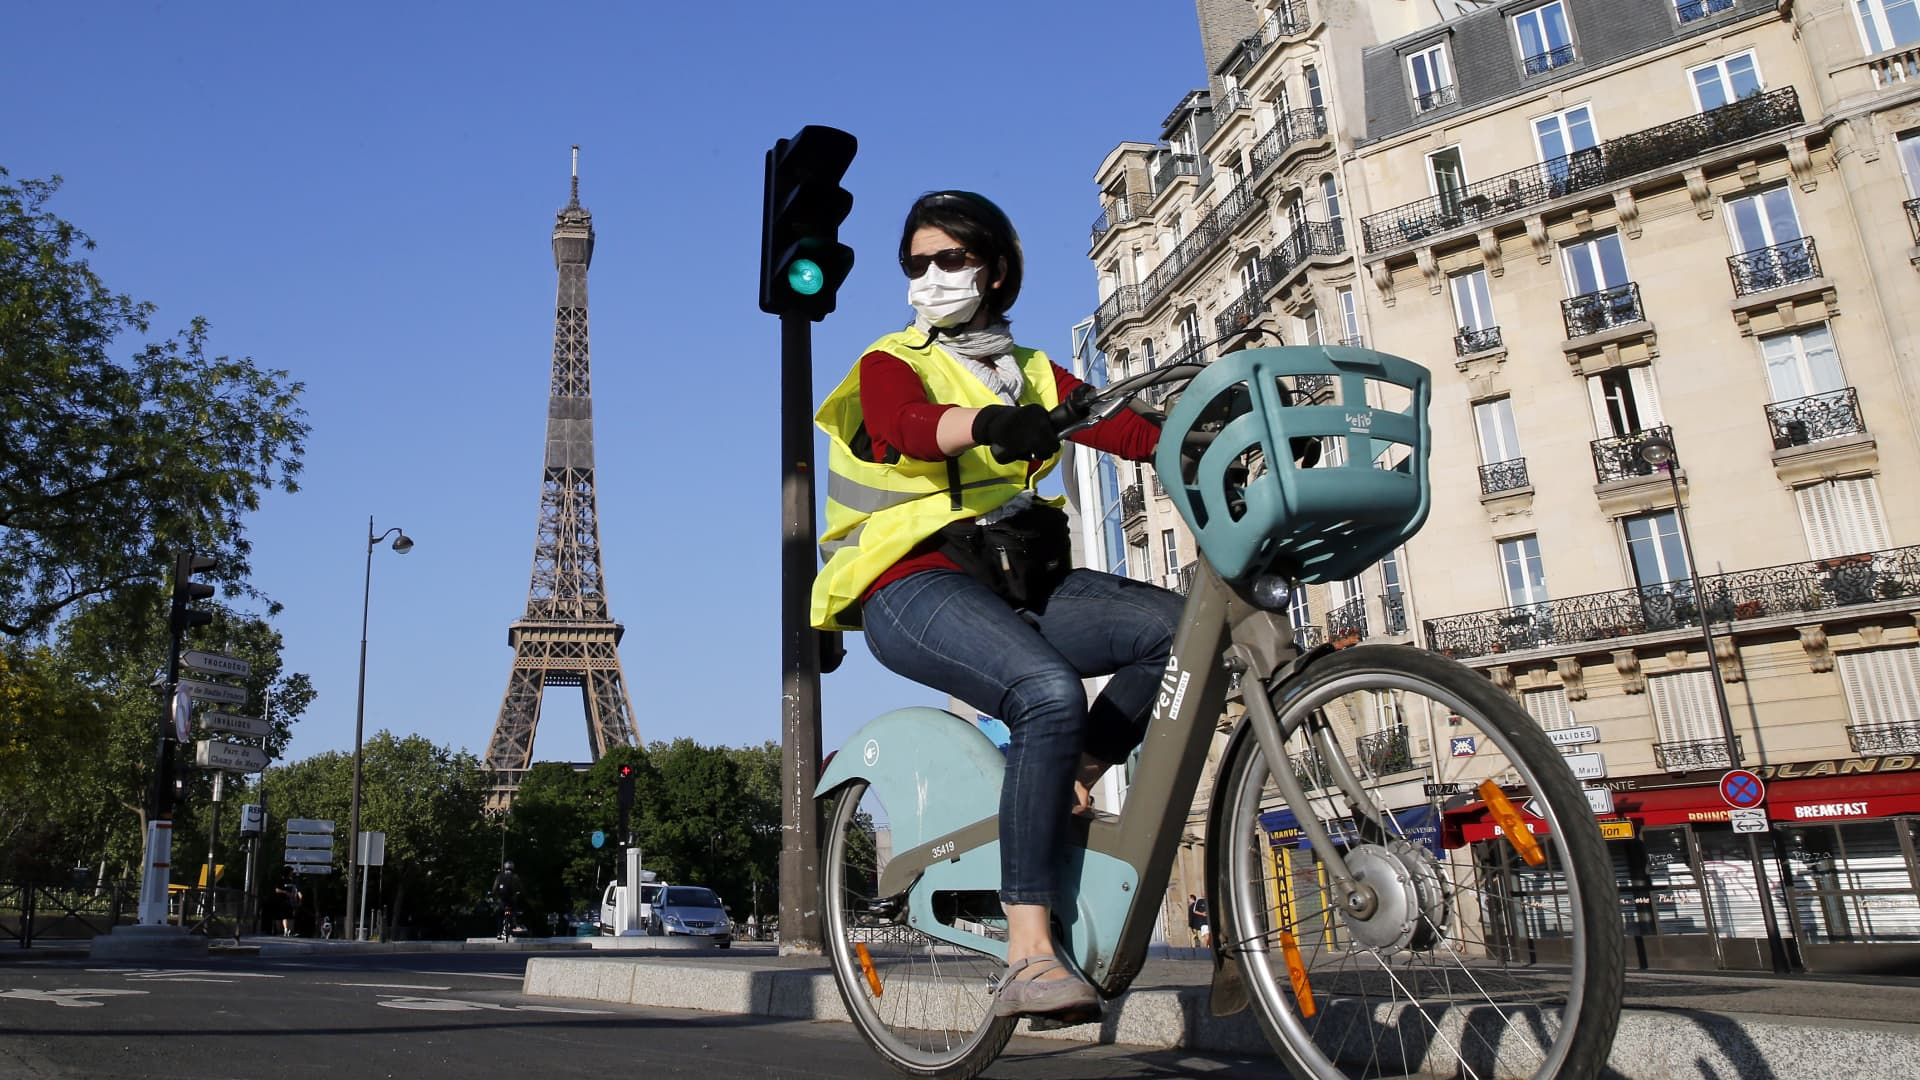 A woman wearing a protective mask rides her bicycle next to the Eiffel Tower on April 23, 2020 in Paris, France.